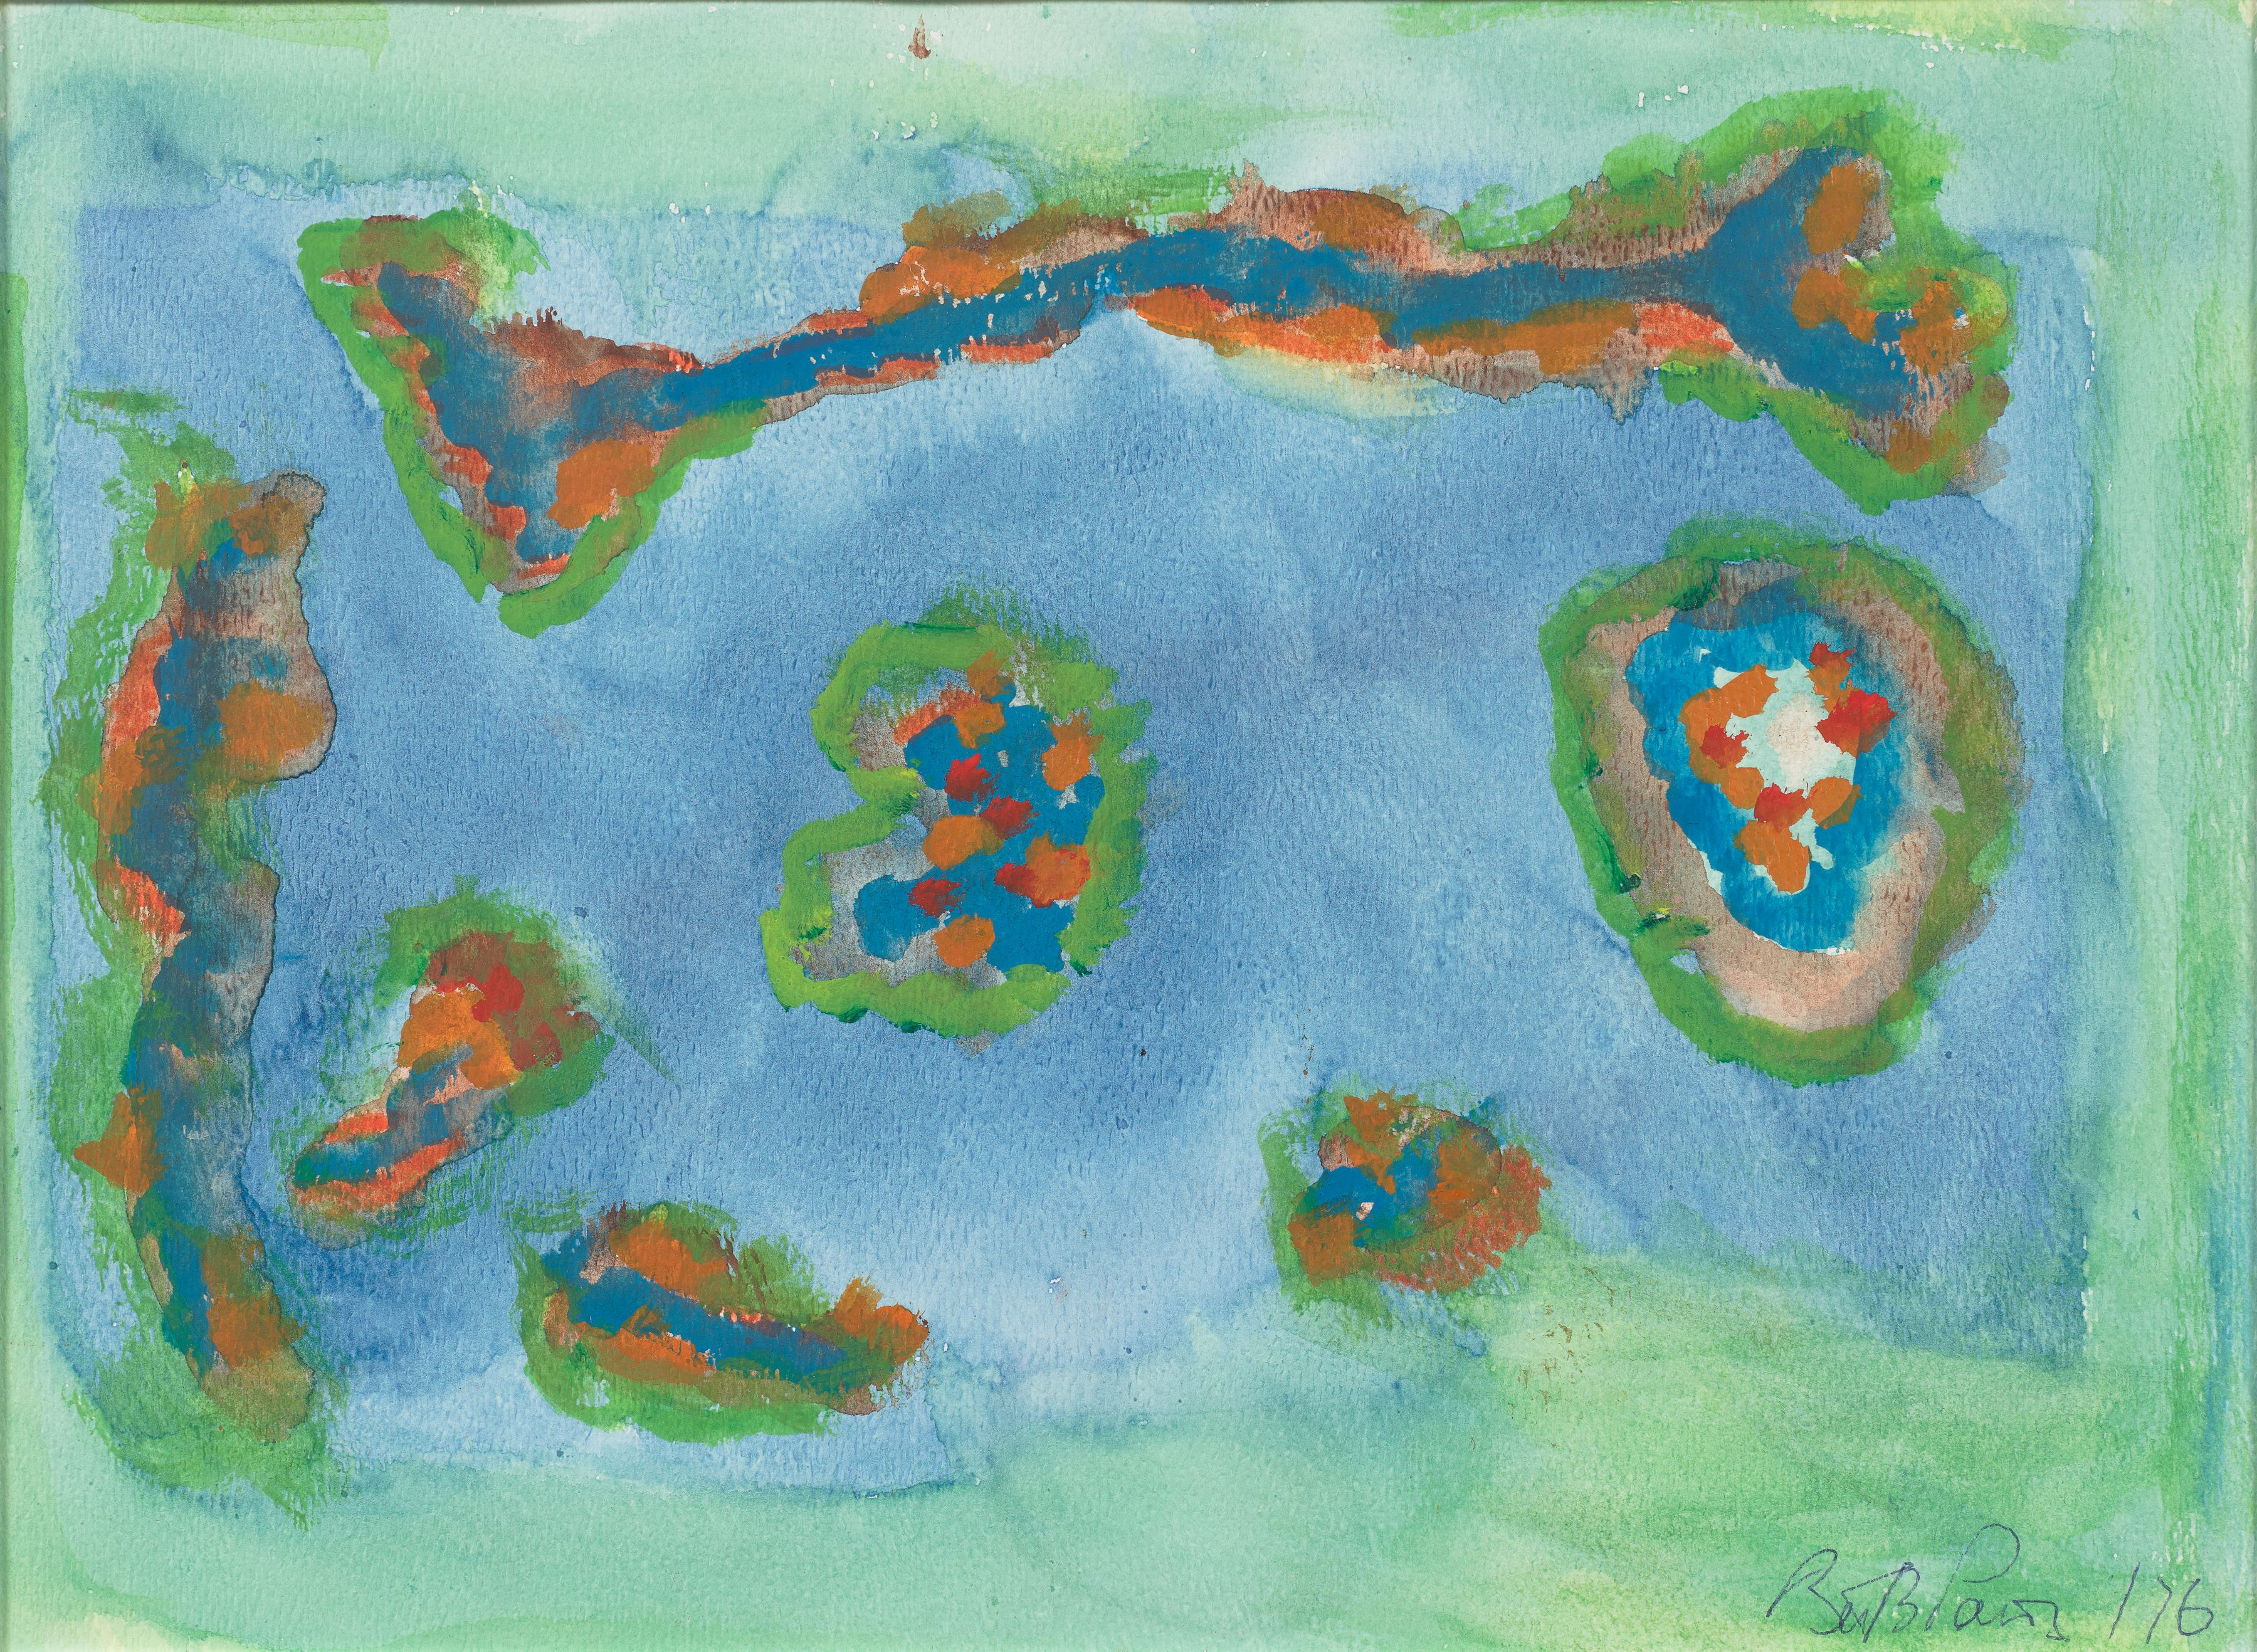 Betty Parsons, Untitled, 1976